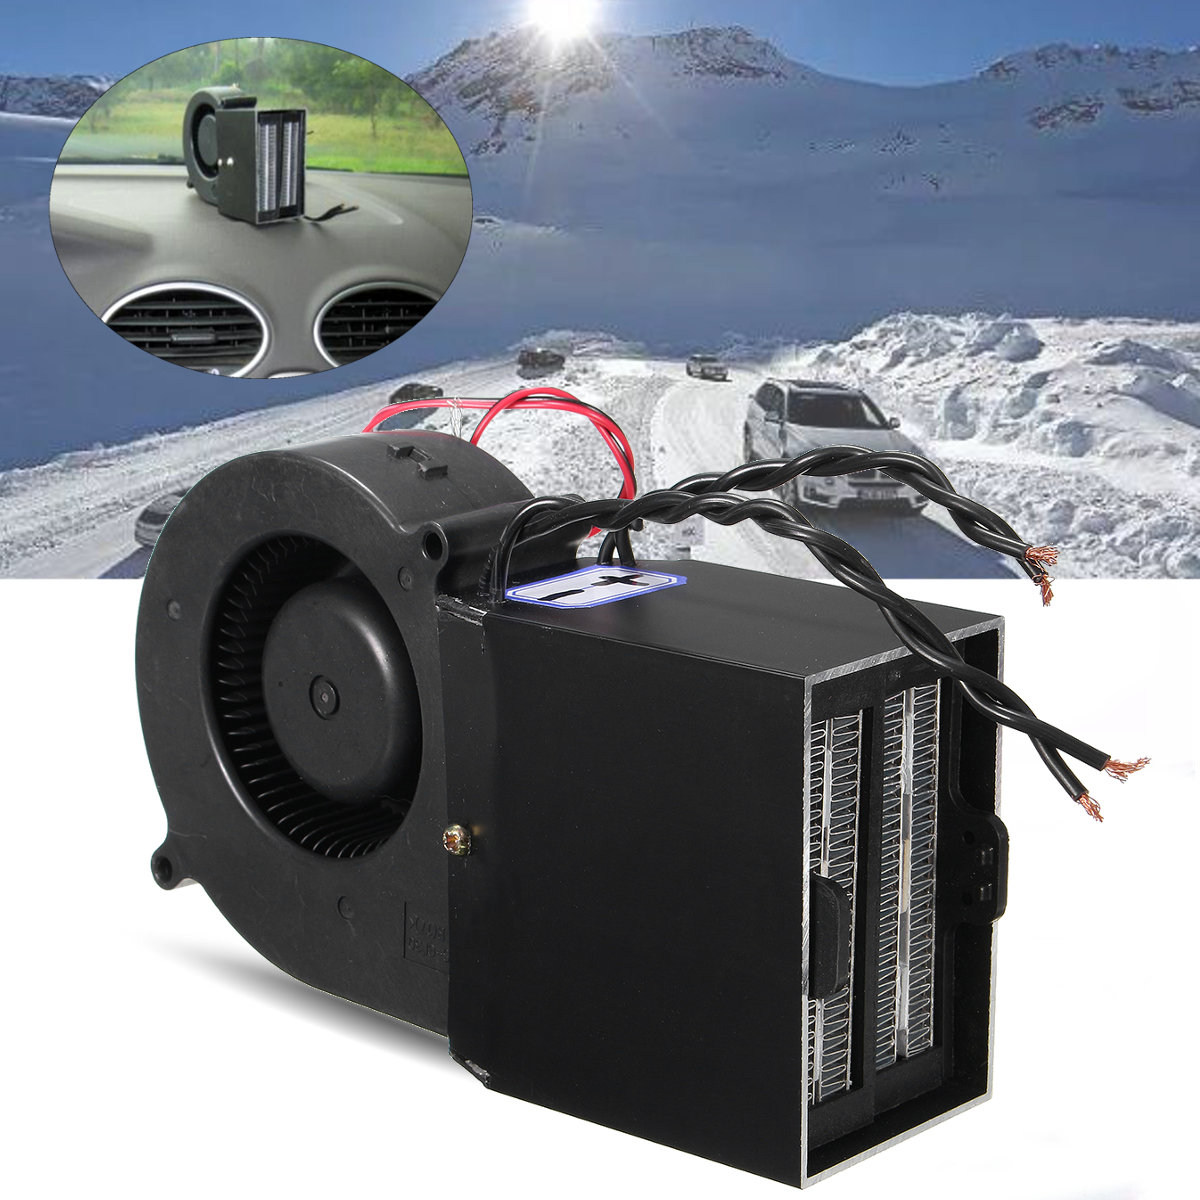 300w Car Portable Ceramic Heating Cooling Heater Fan Defroster Demister Dc 12v 12-volt Portable Appliances